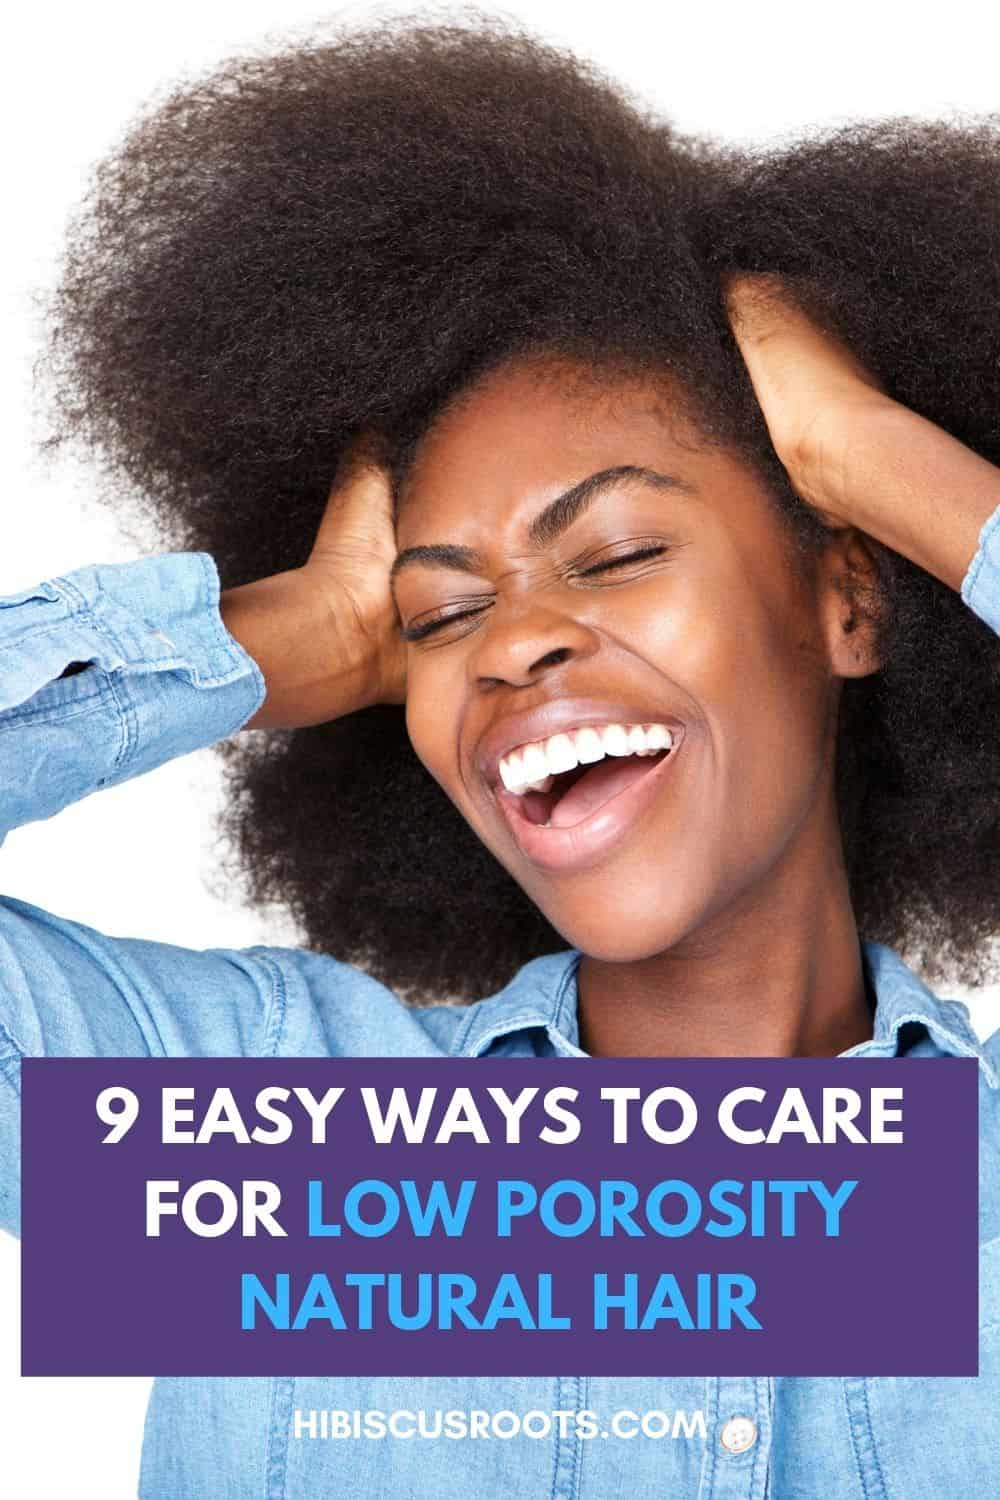 The Complete Guide to Low Porosity 4C Natural Hair!